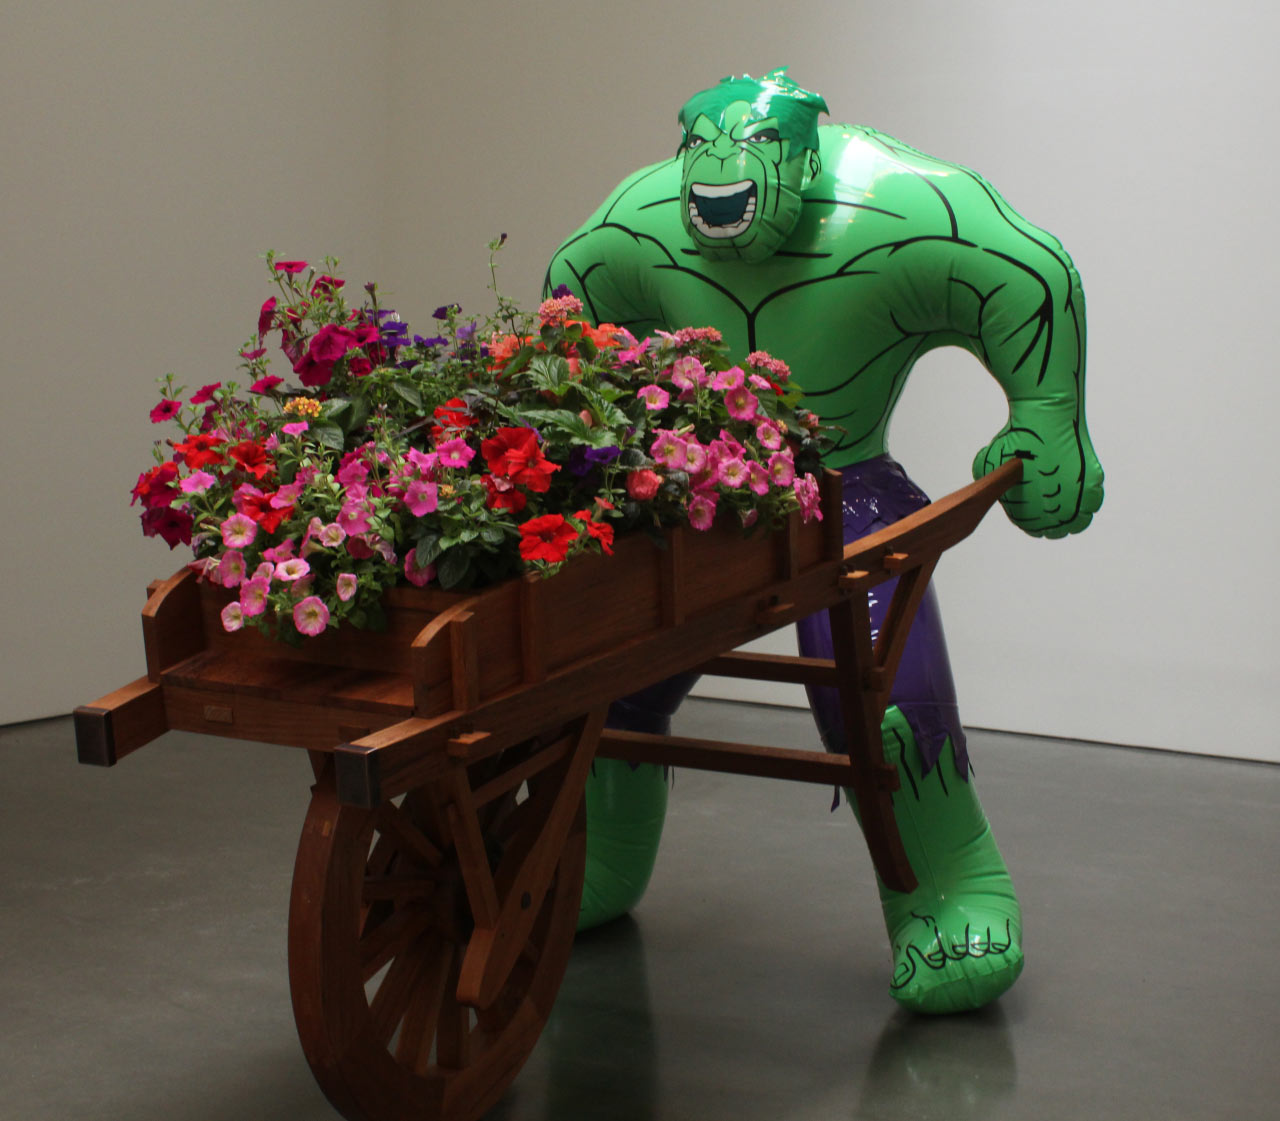 "JEFF KOONS ""Hulk (Wheelbarrow)"" 2004-2013. Polychromed bronze, mixed media and live flowering plants. © Jeff Koons. Courtesy Gagosian Gallery."